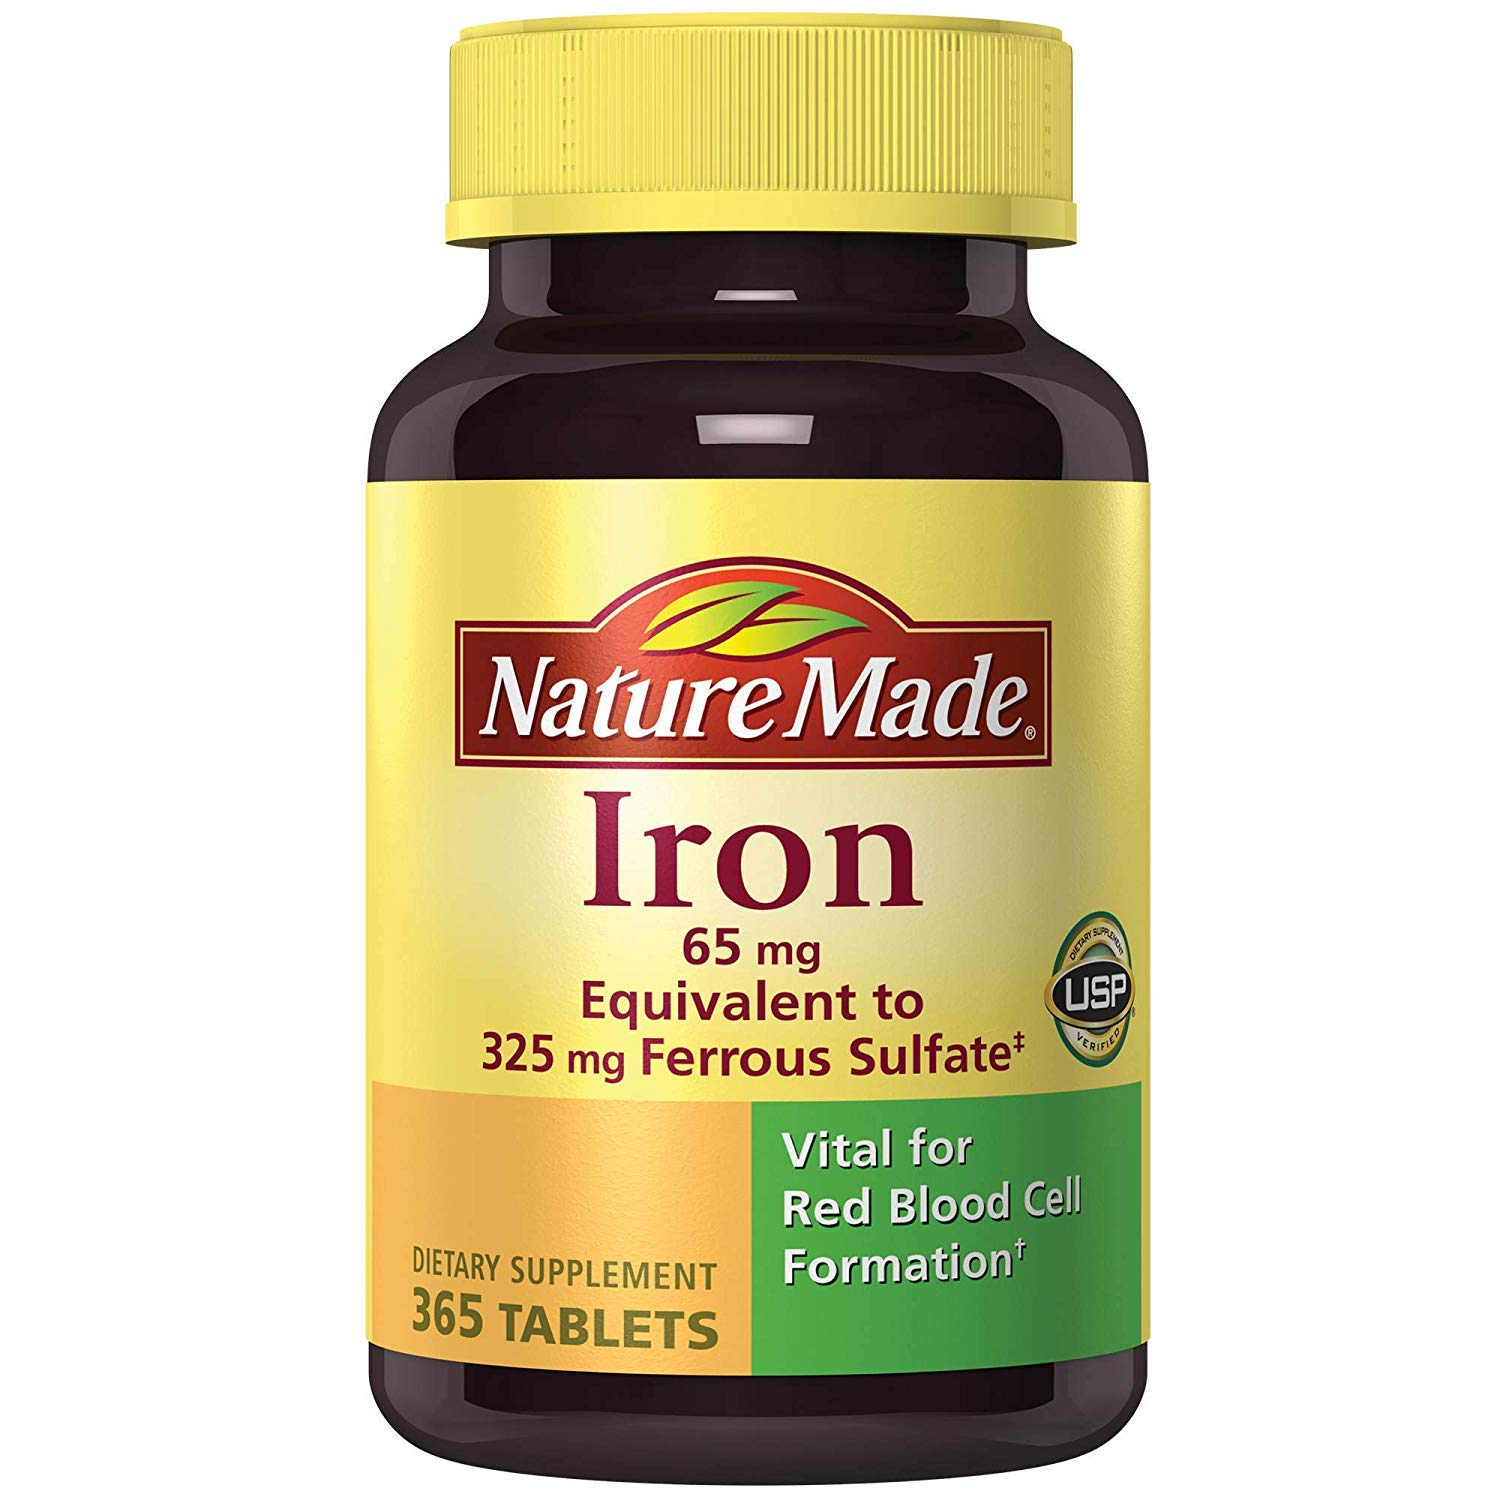 Cool Nature Made Iron 65 Mg 365 Count From Ferrous Sulfate 1 Bottle 365 Tablets Andrewgaddart Wooden Chair Designs For Living Room Andrewgaddartcom